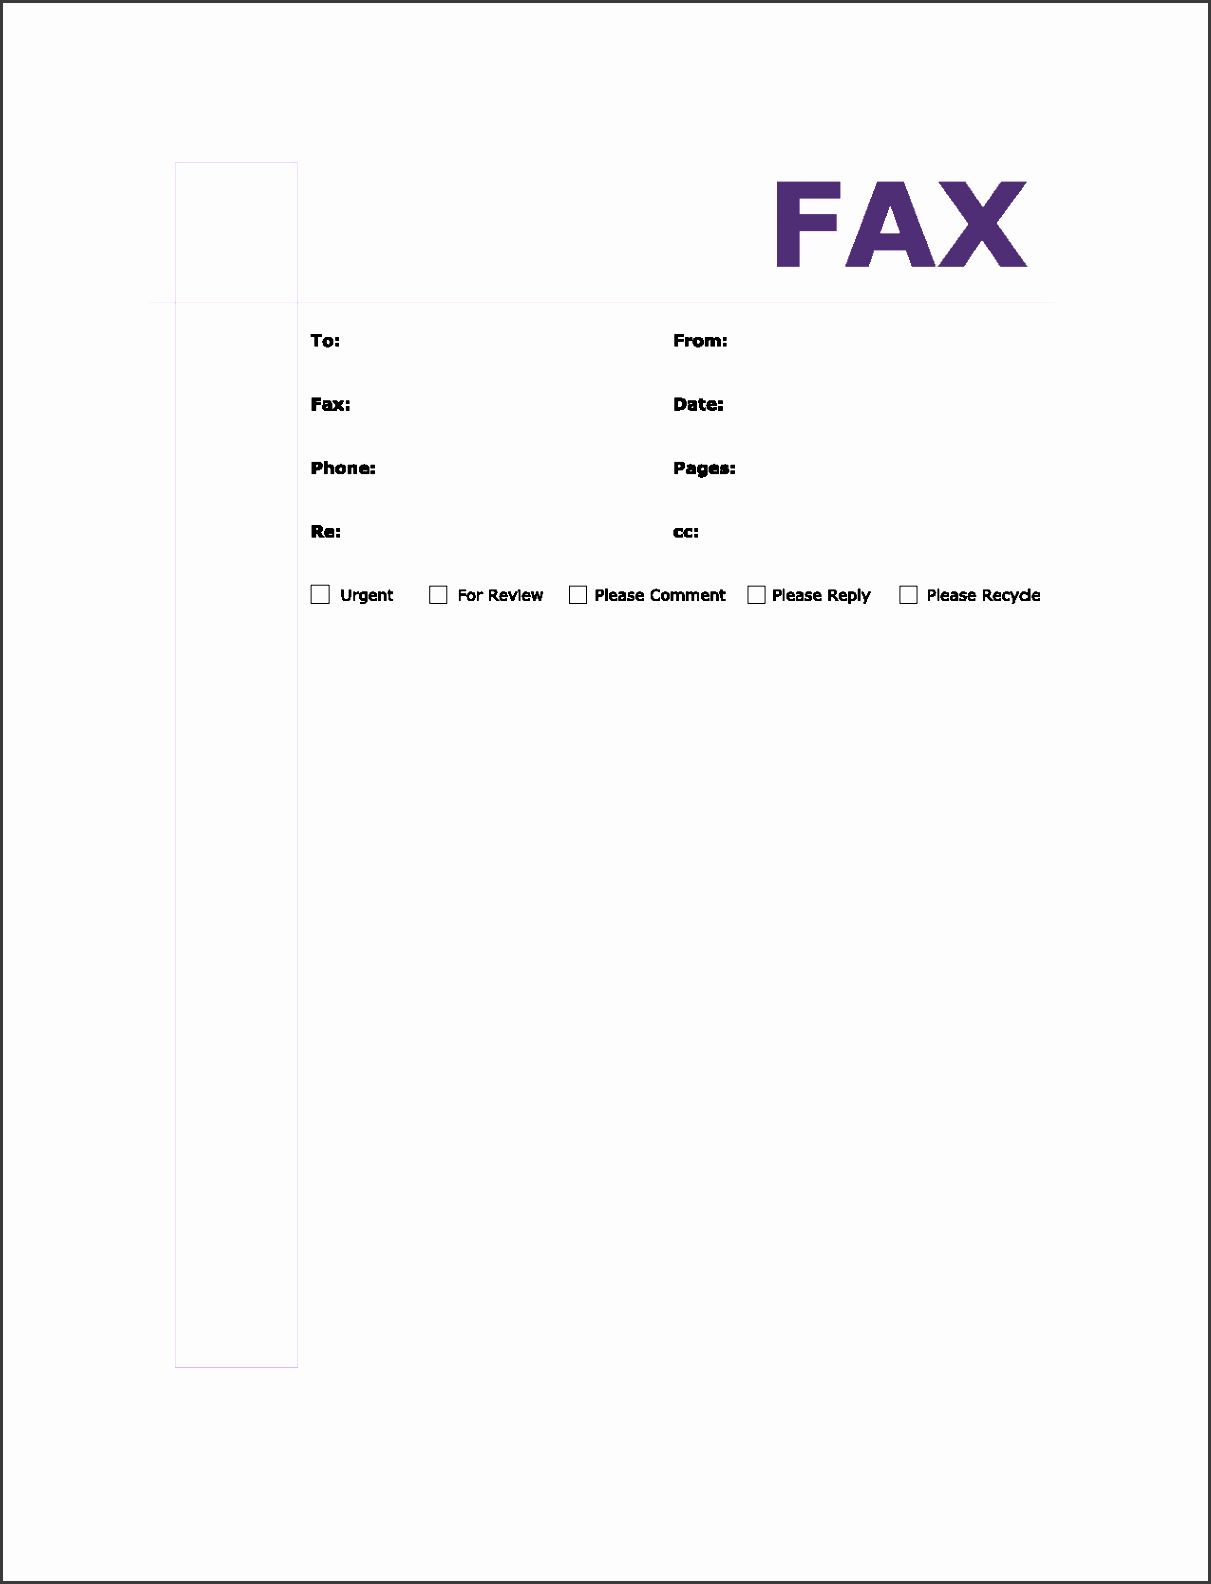 10 Fax Transmittal Template - SampleTemplatess - SampleTemplatess